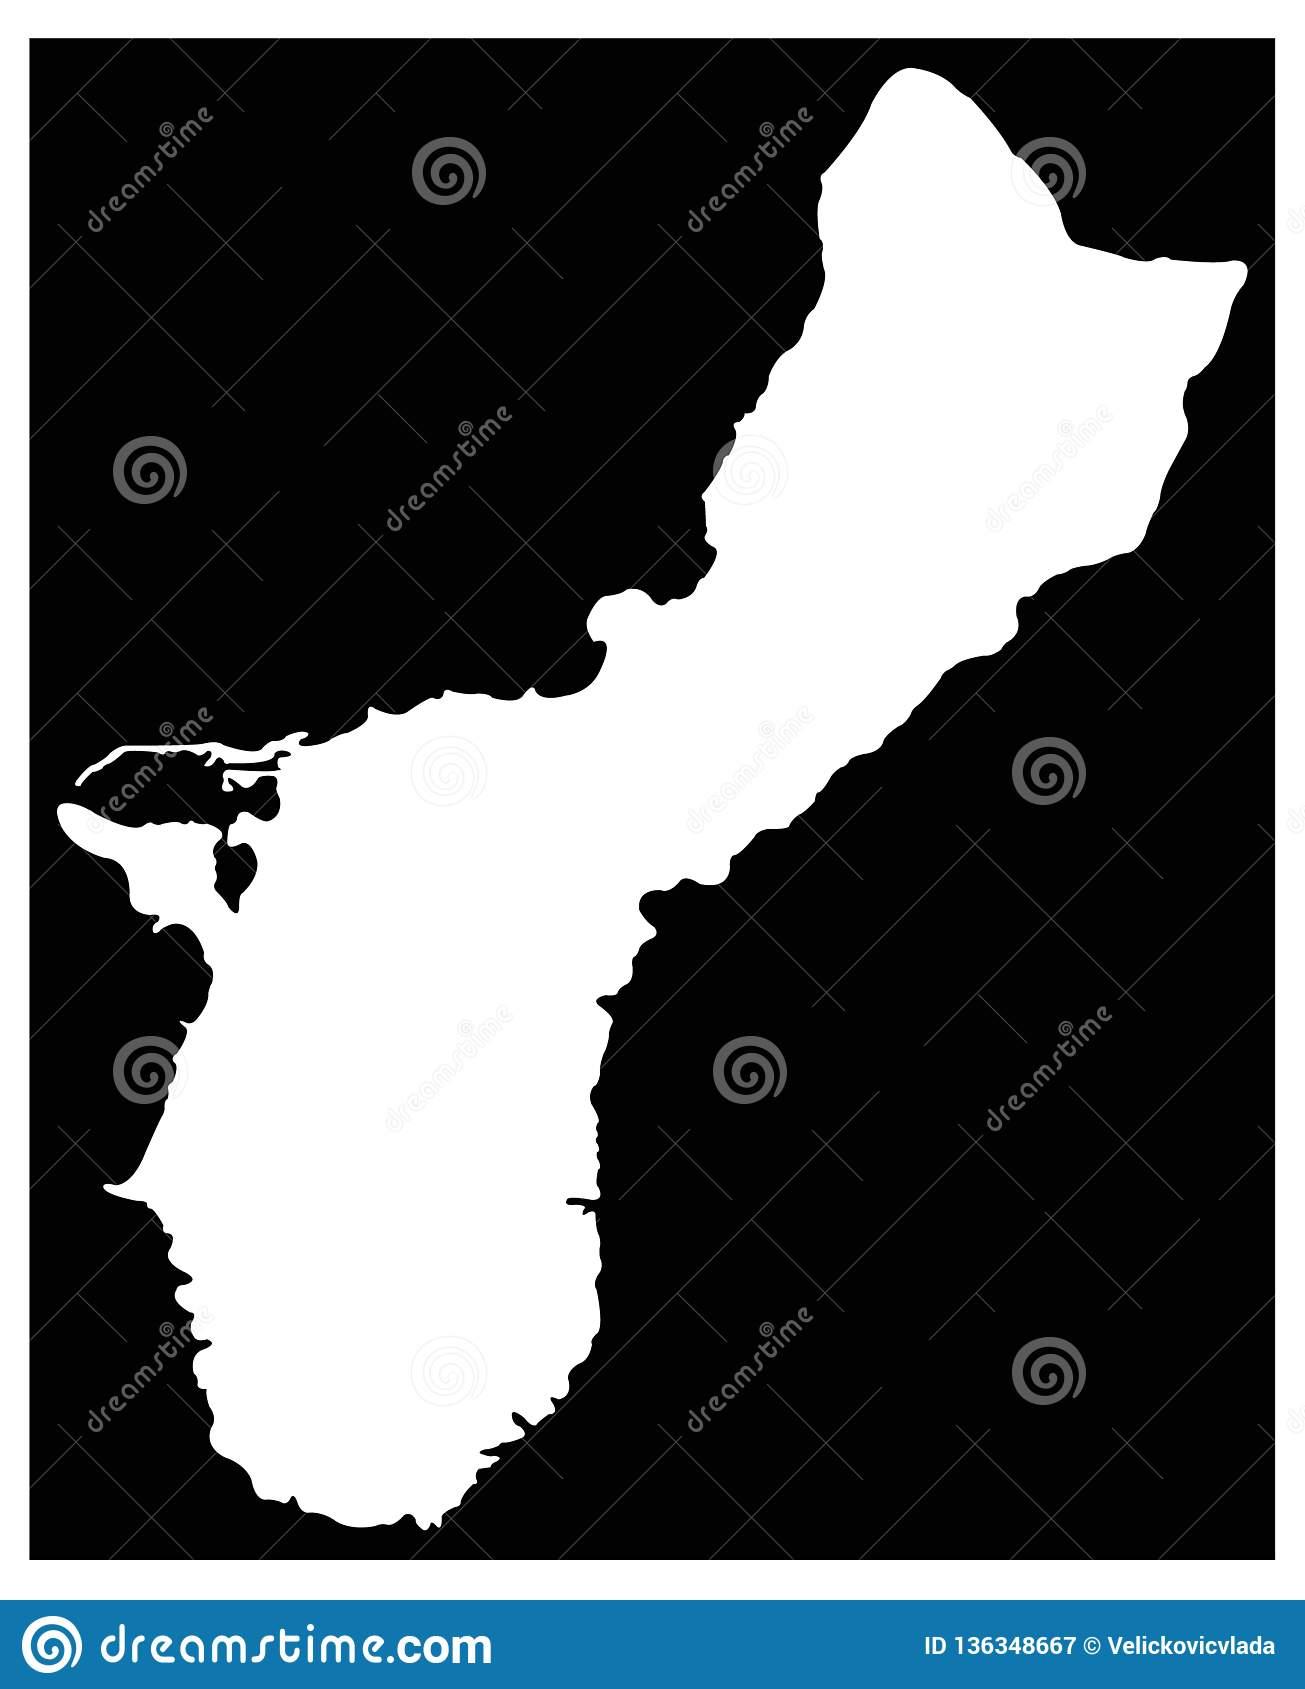 Guam Map - Island Country In Pacific Ocean Stock Vector ... Guam In Us Map on jordan in map, djibouti in map, senegal in map, idaho in map, pearl harbor in map, saudi arabia in map, mauritania in map, grenada in map, south sudan in map, andorra in map, luxembourg in map, uzbekistan in map, togo in map, bahrain in map, turkmenistan in map, prague in map, saint lucia in map, brisbane in map, tennessee in map, brunei in map,